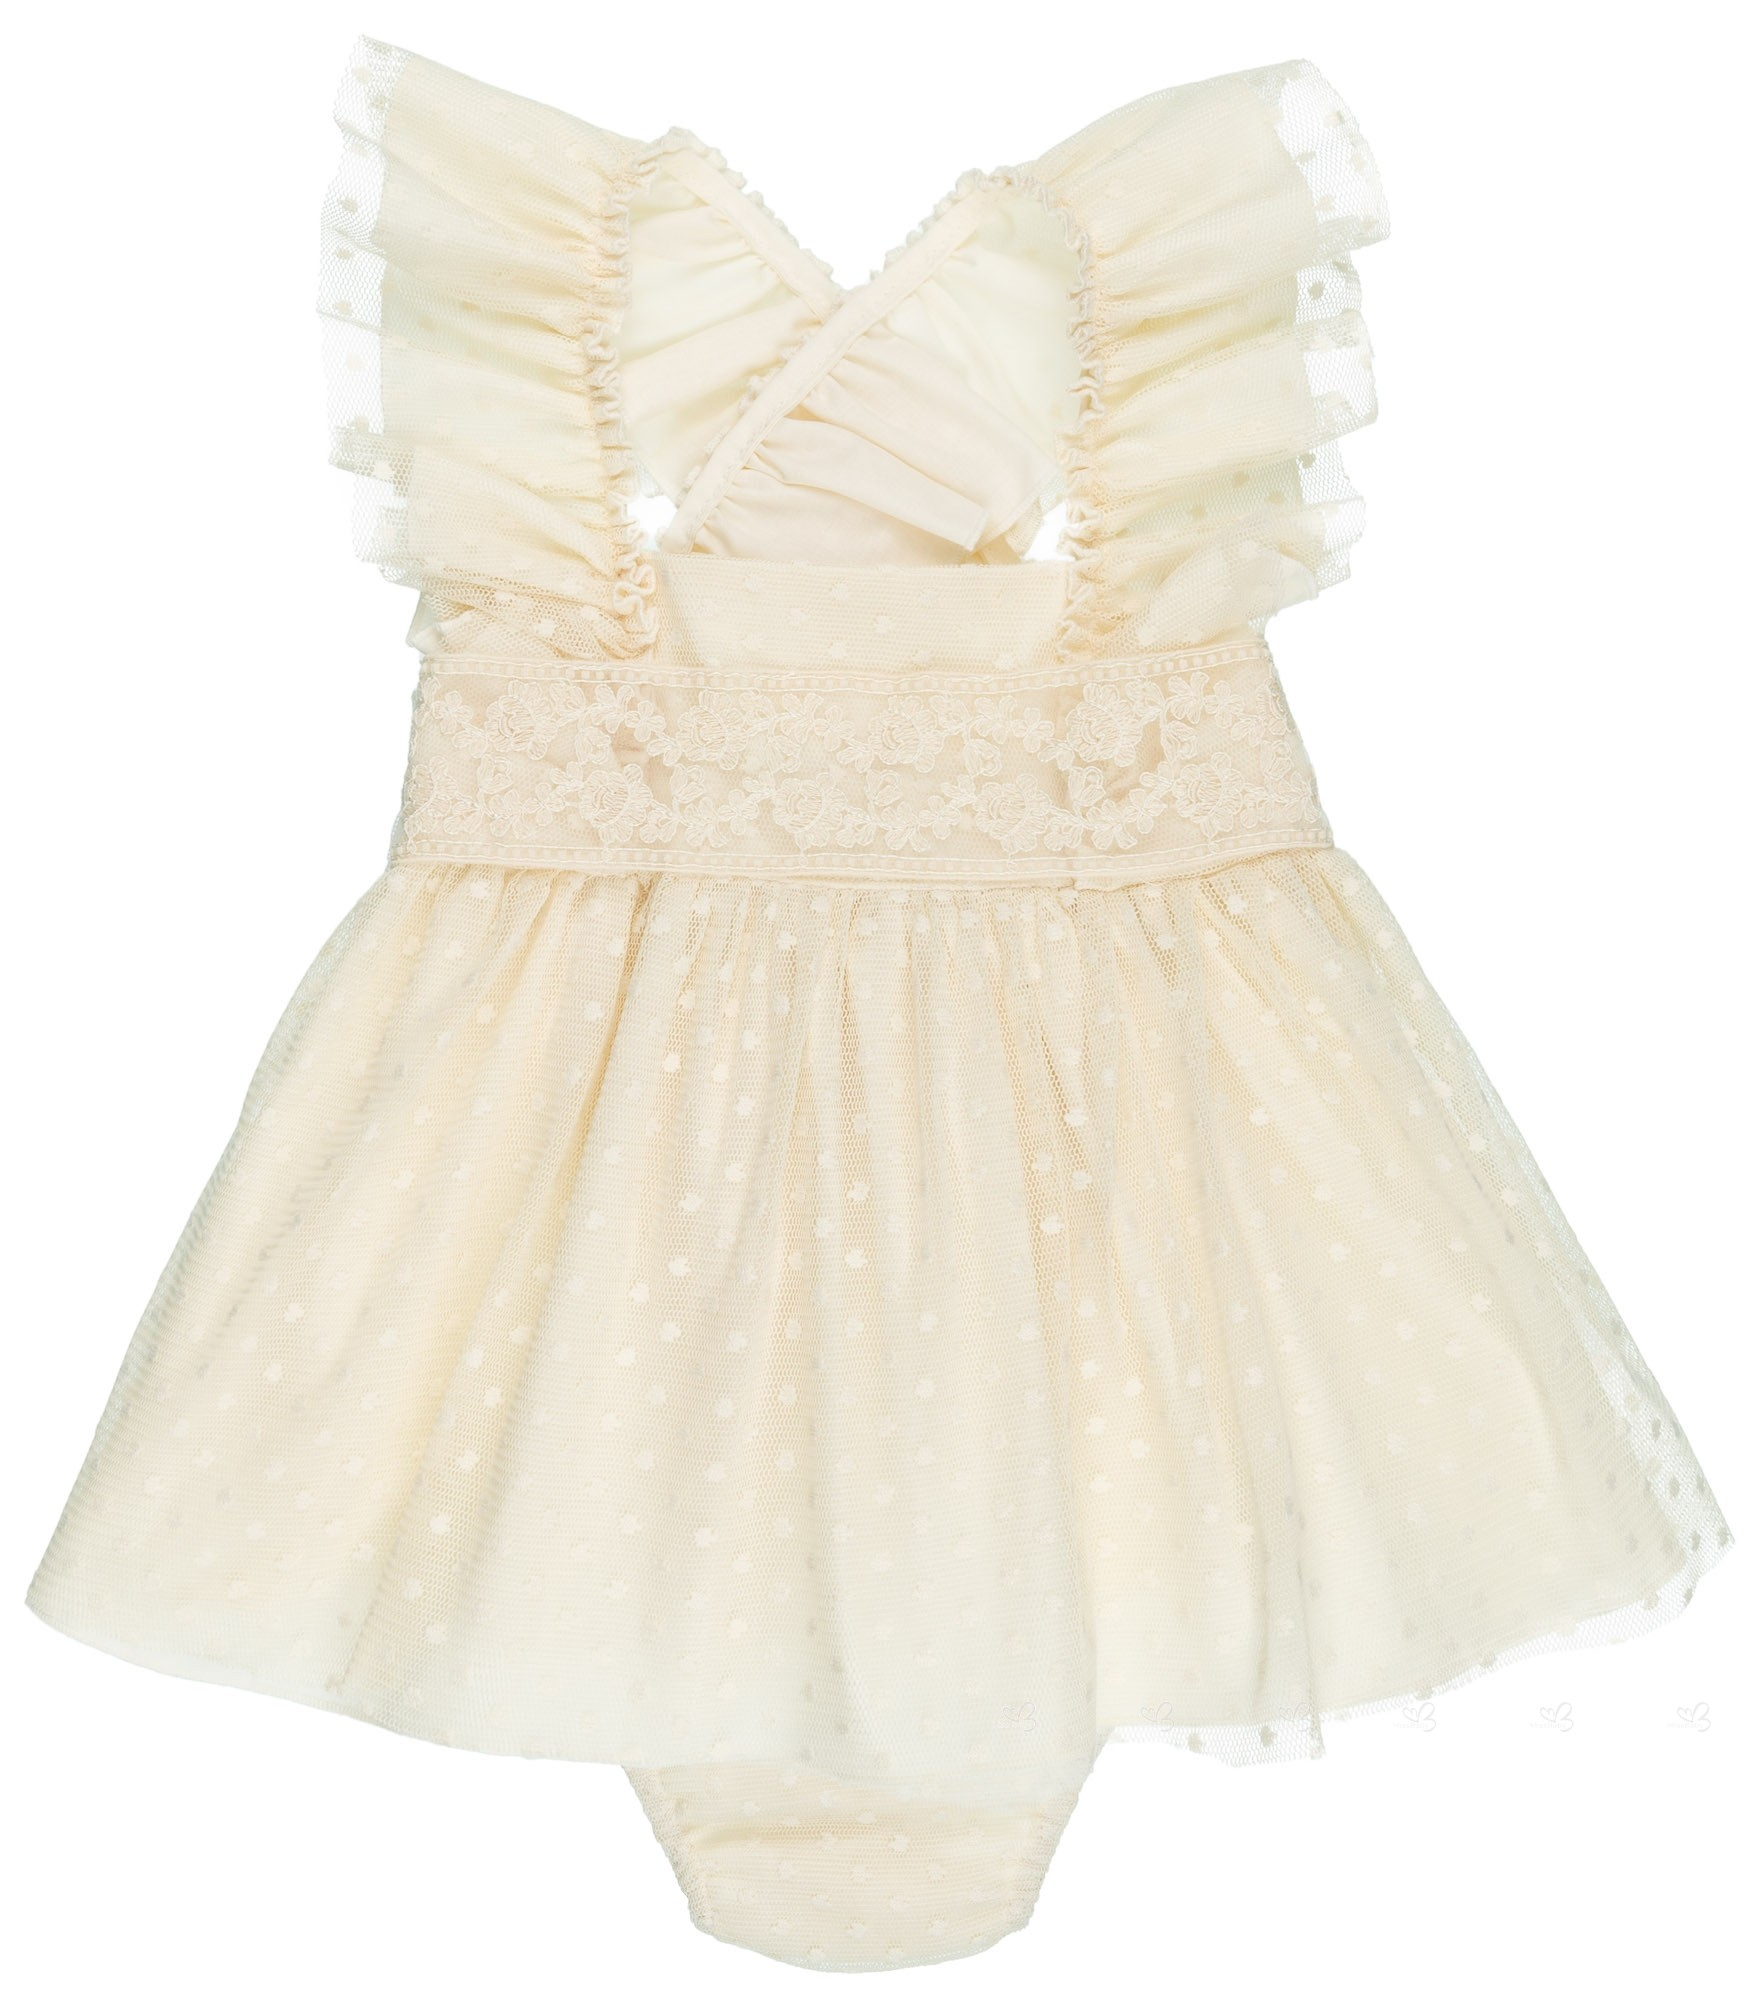 3aec98c8f13 Badum Badero Baby Girls Ivory Tulle & Plumeti 2 Piece Dress Set ...